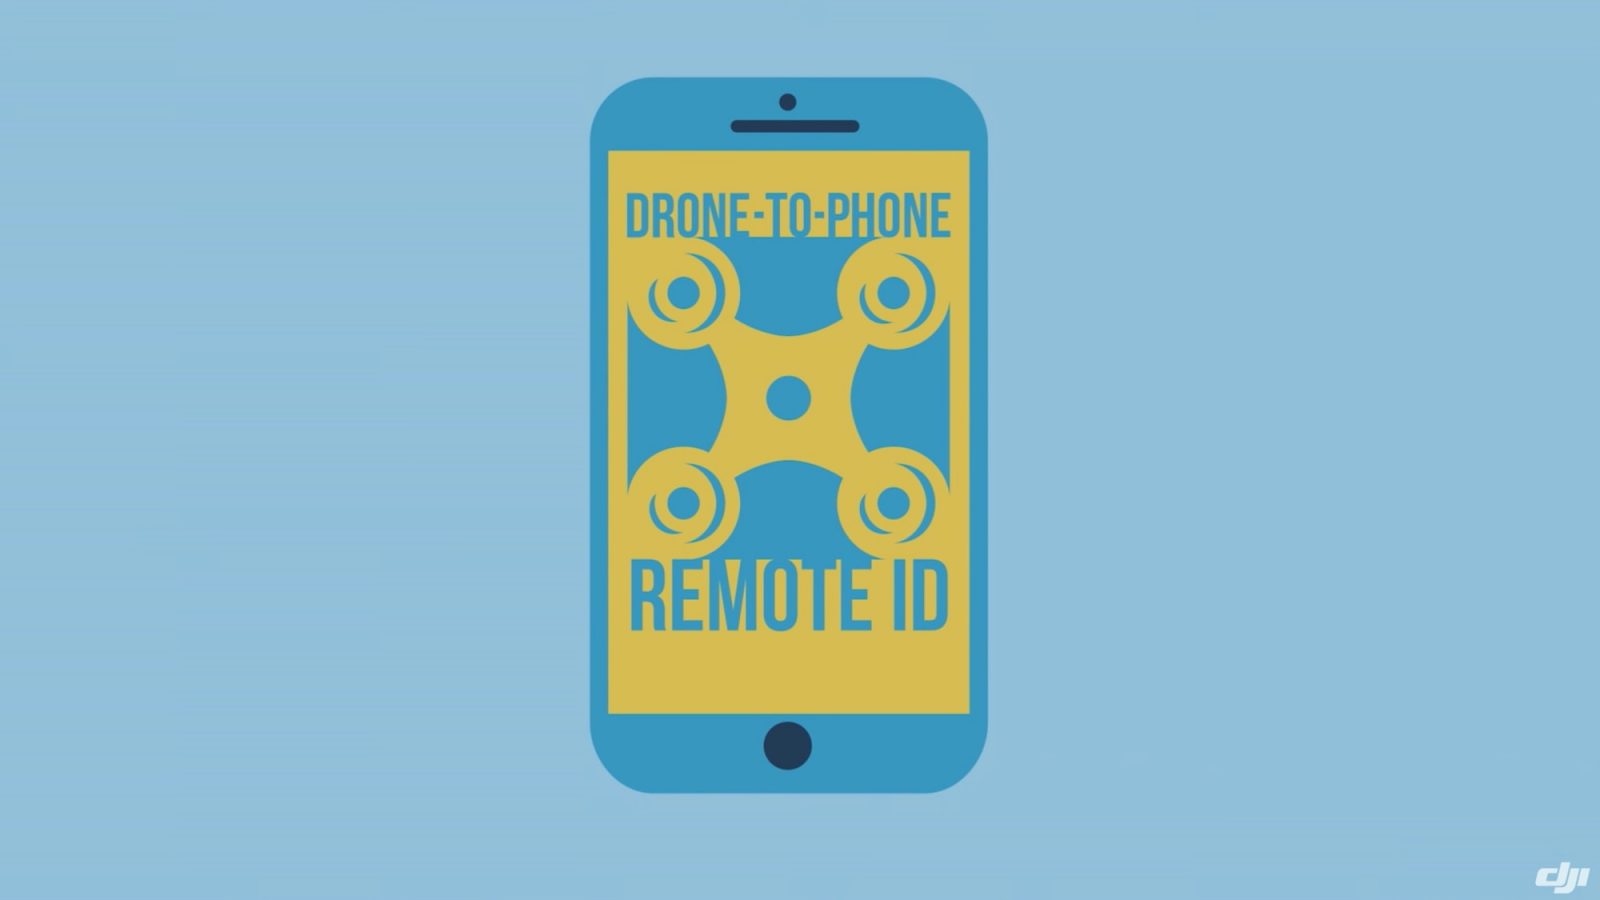 DJI's Drone-To-Phone Broadcast Remote ID [video]